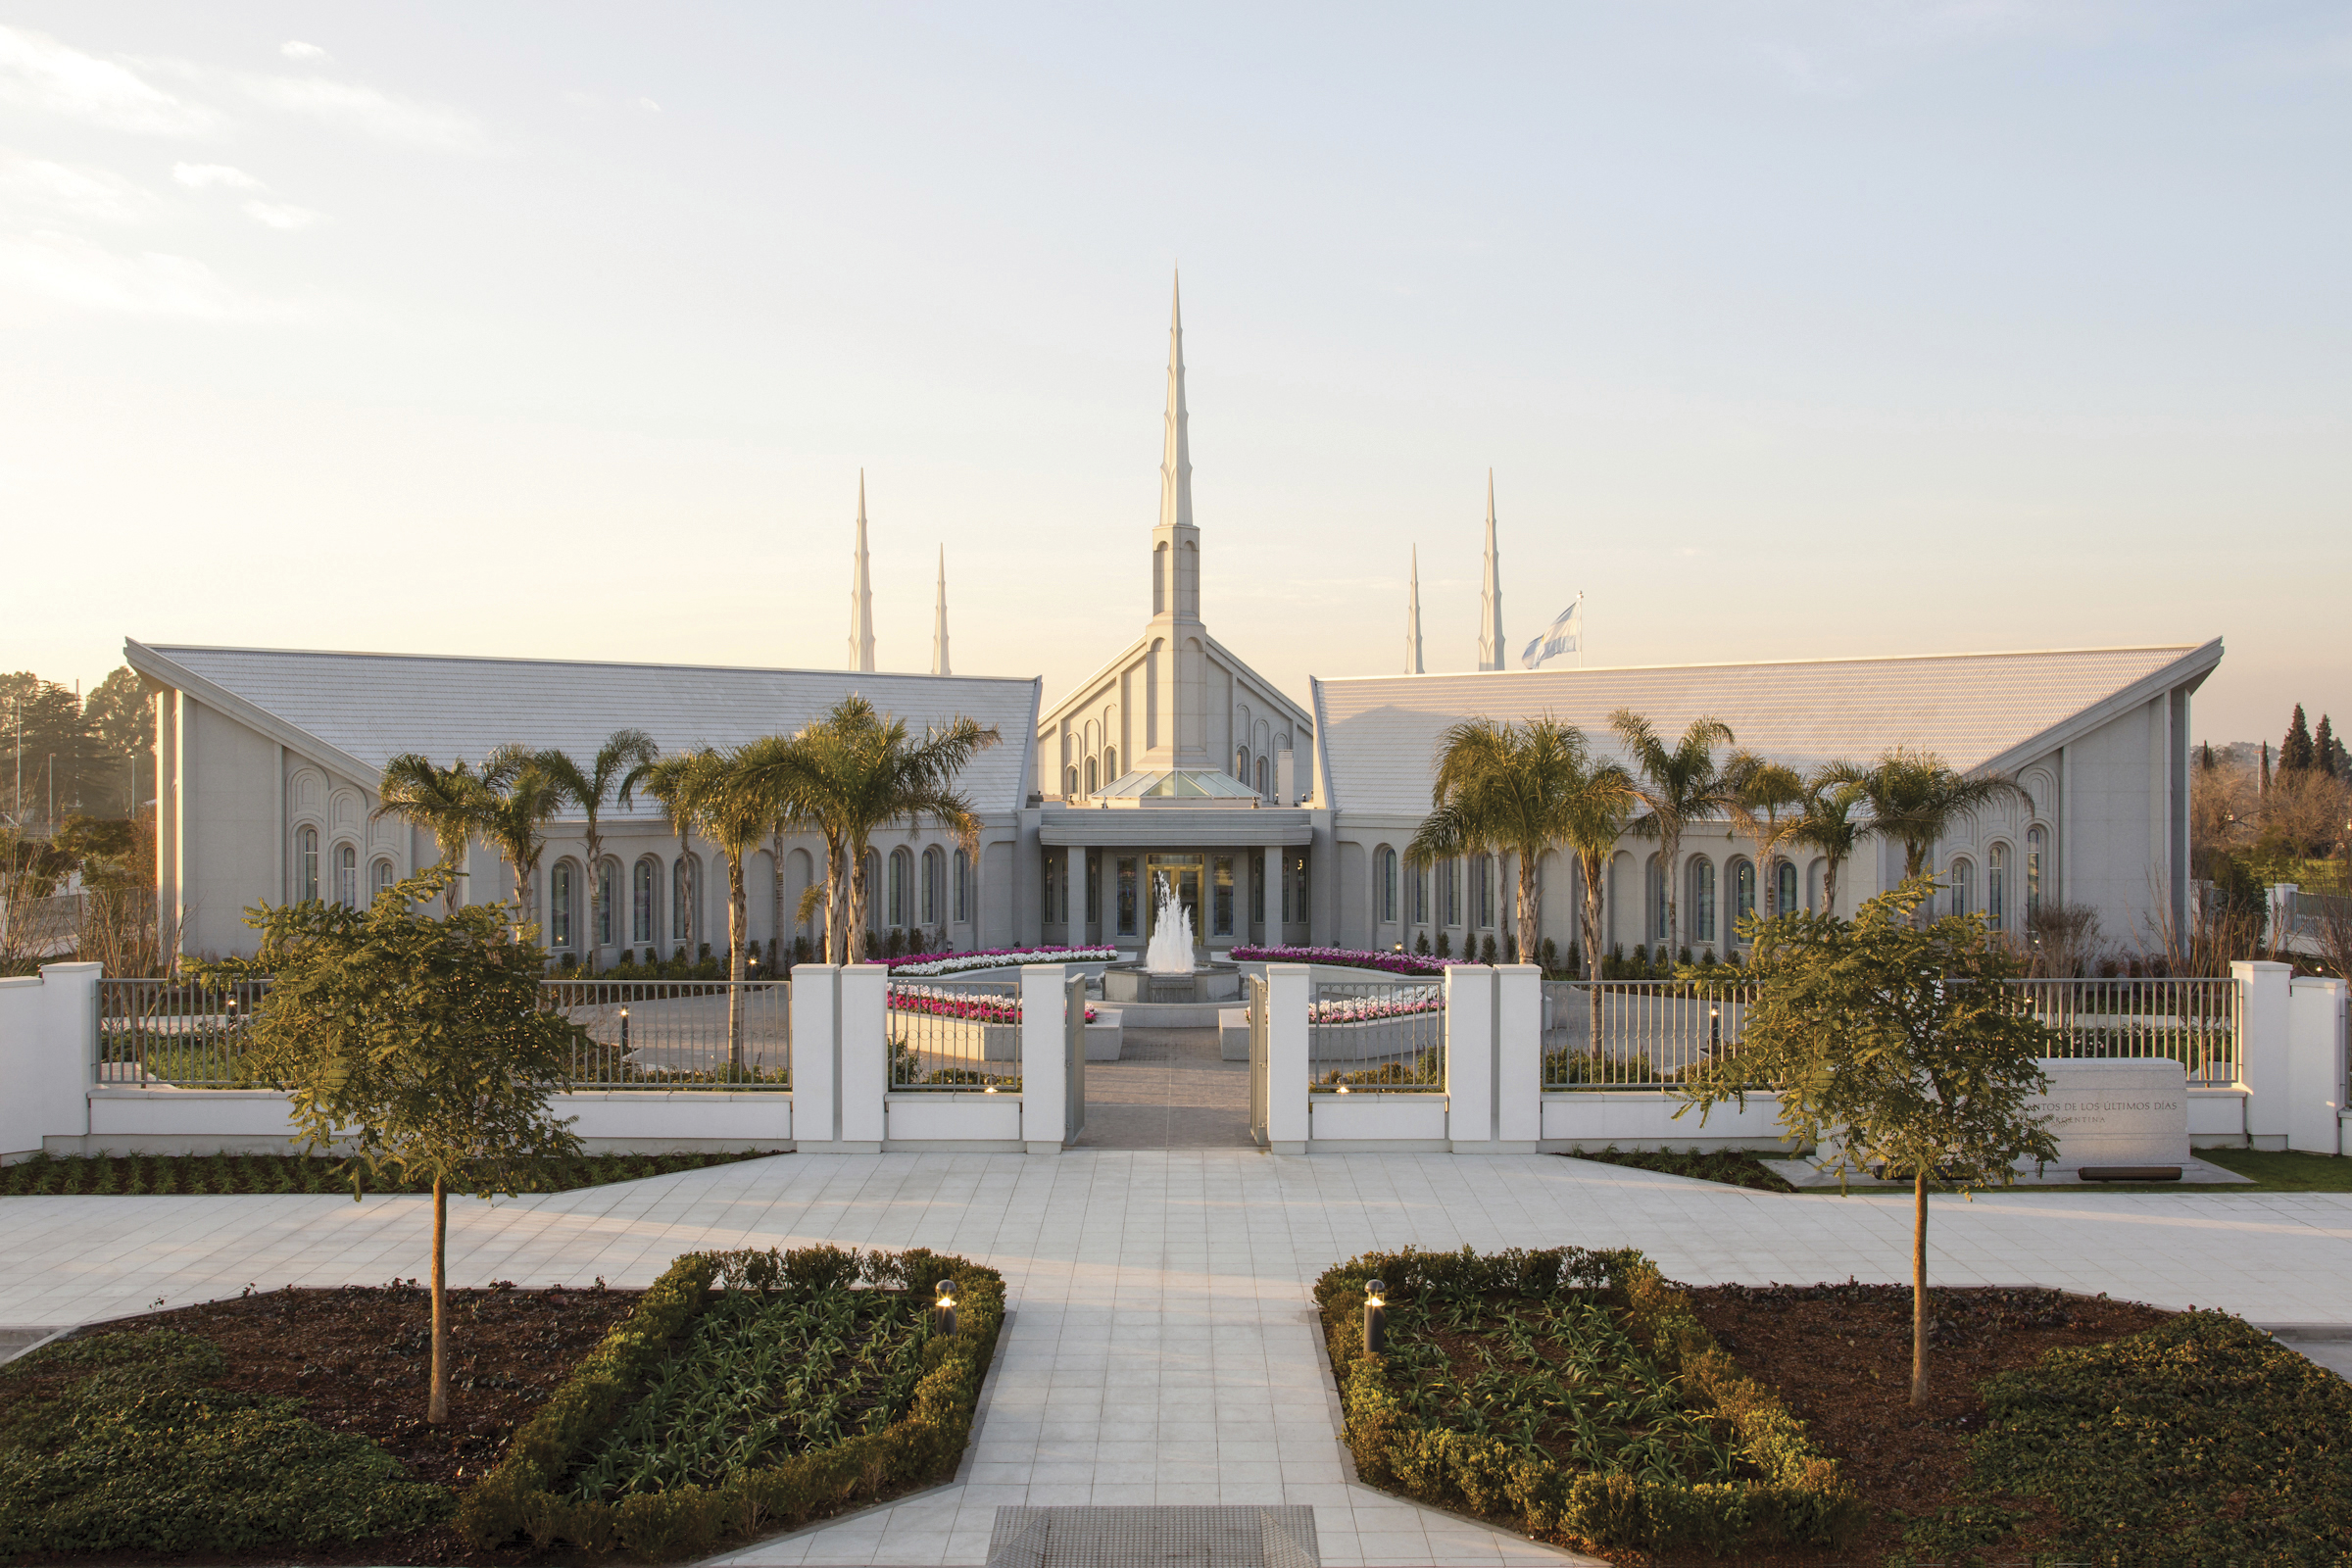 A view of the Buenos Aires Argentina Temple and grounds from afar.